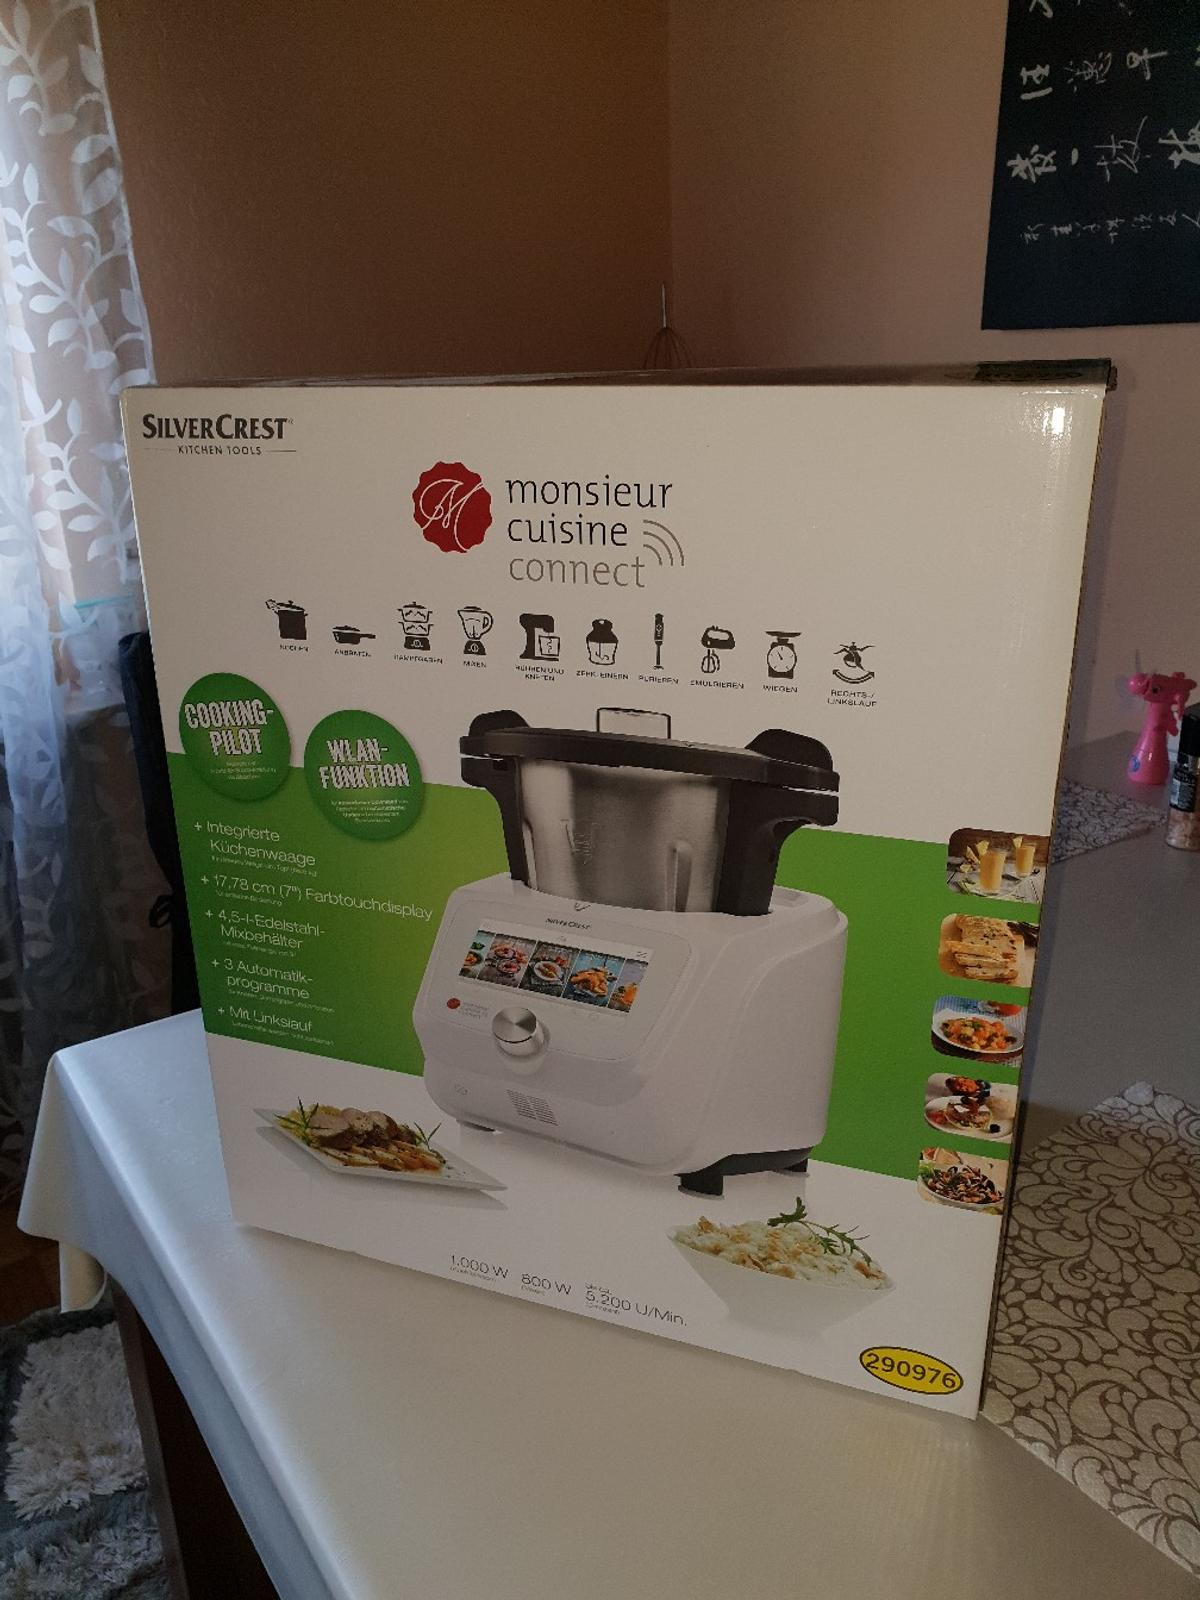 Monsieur Cuisine Connect Skmc 1200 Ovp In 35088 Battenberg Für 399